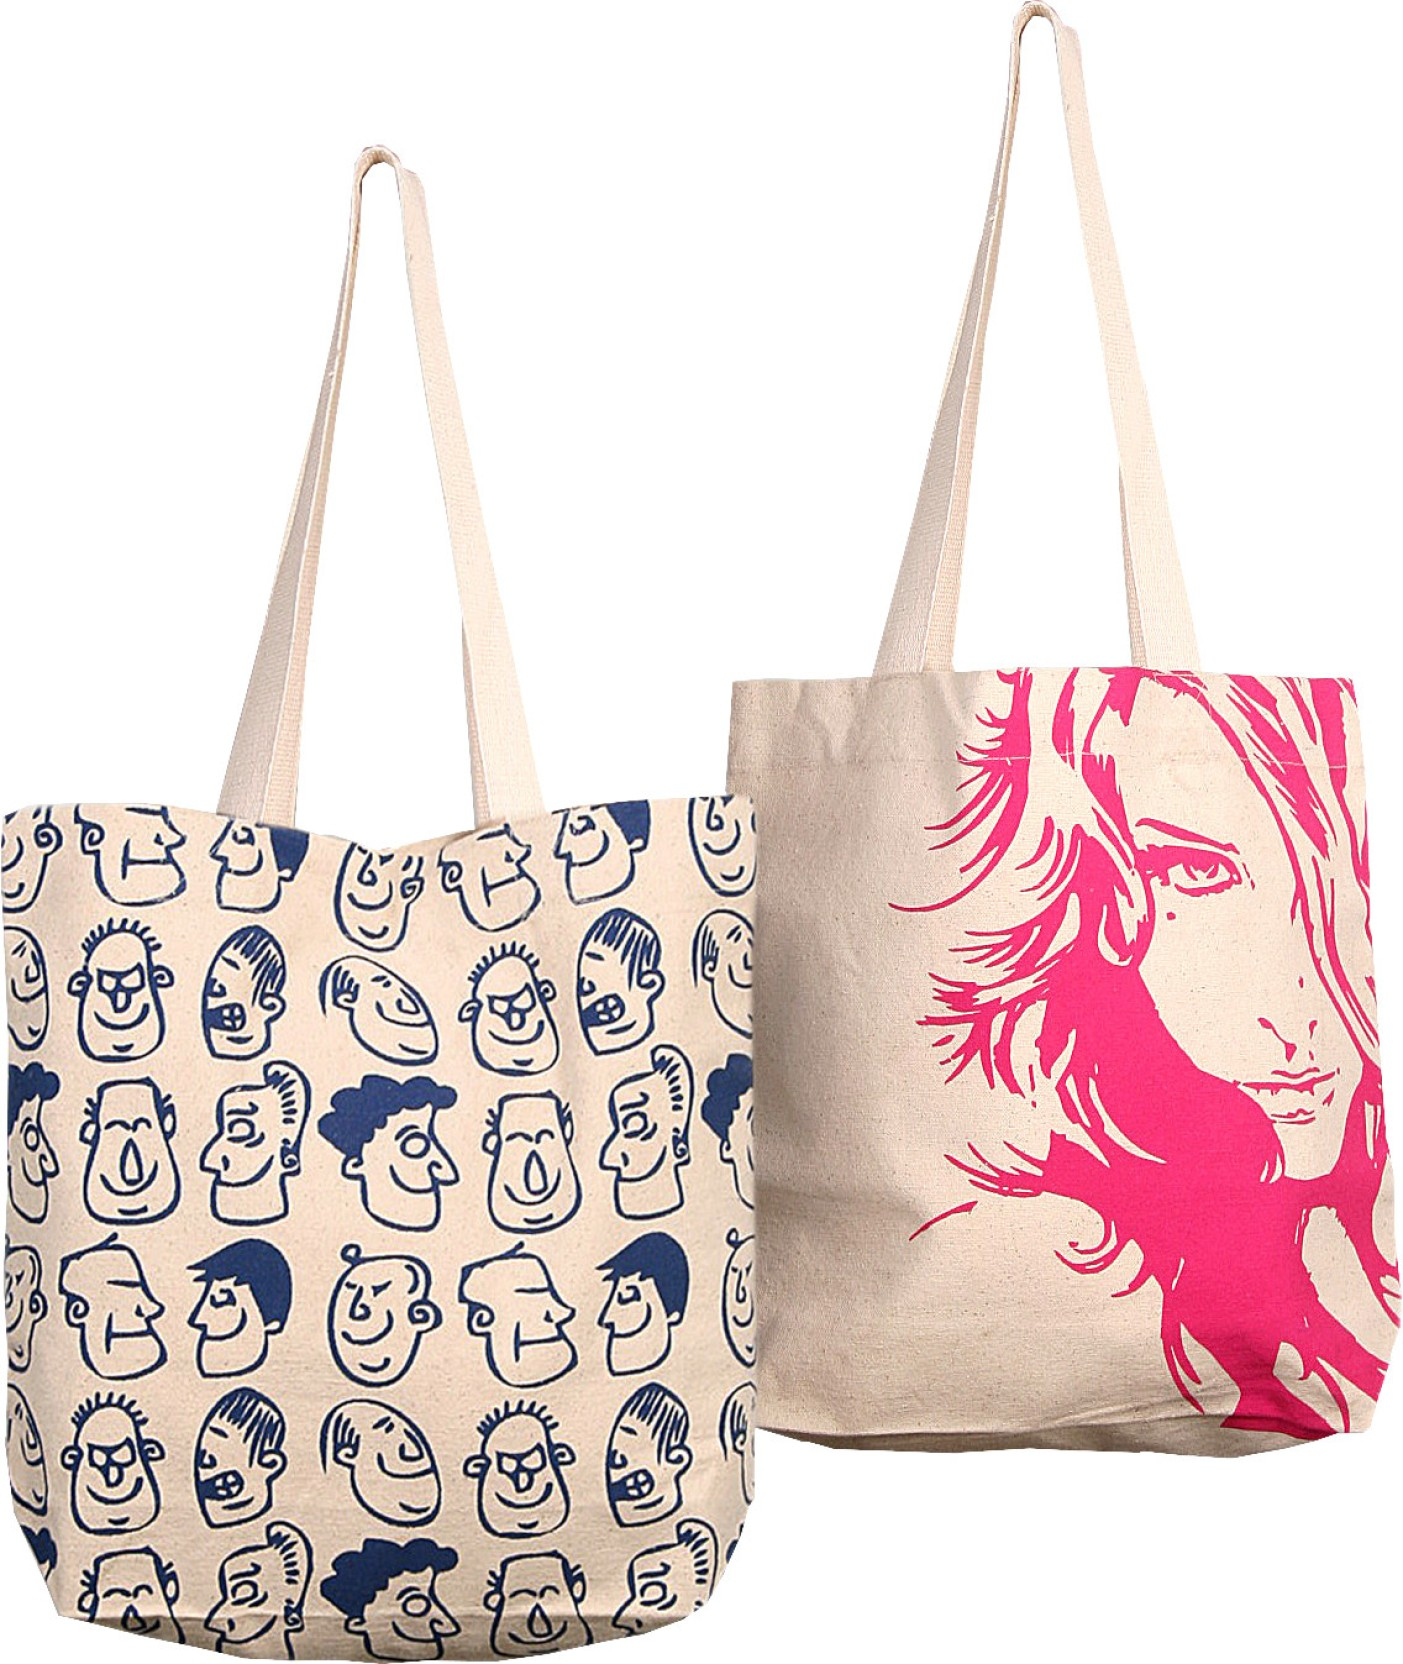 Long Handbags Flipkart | Ahoy Comics